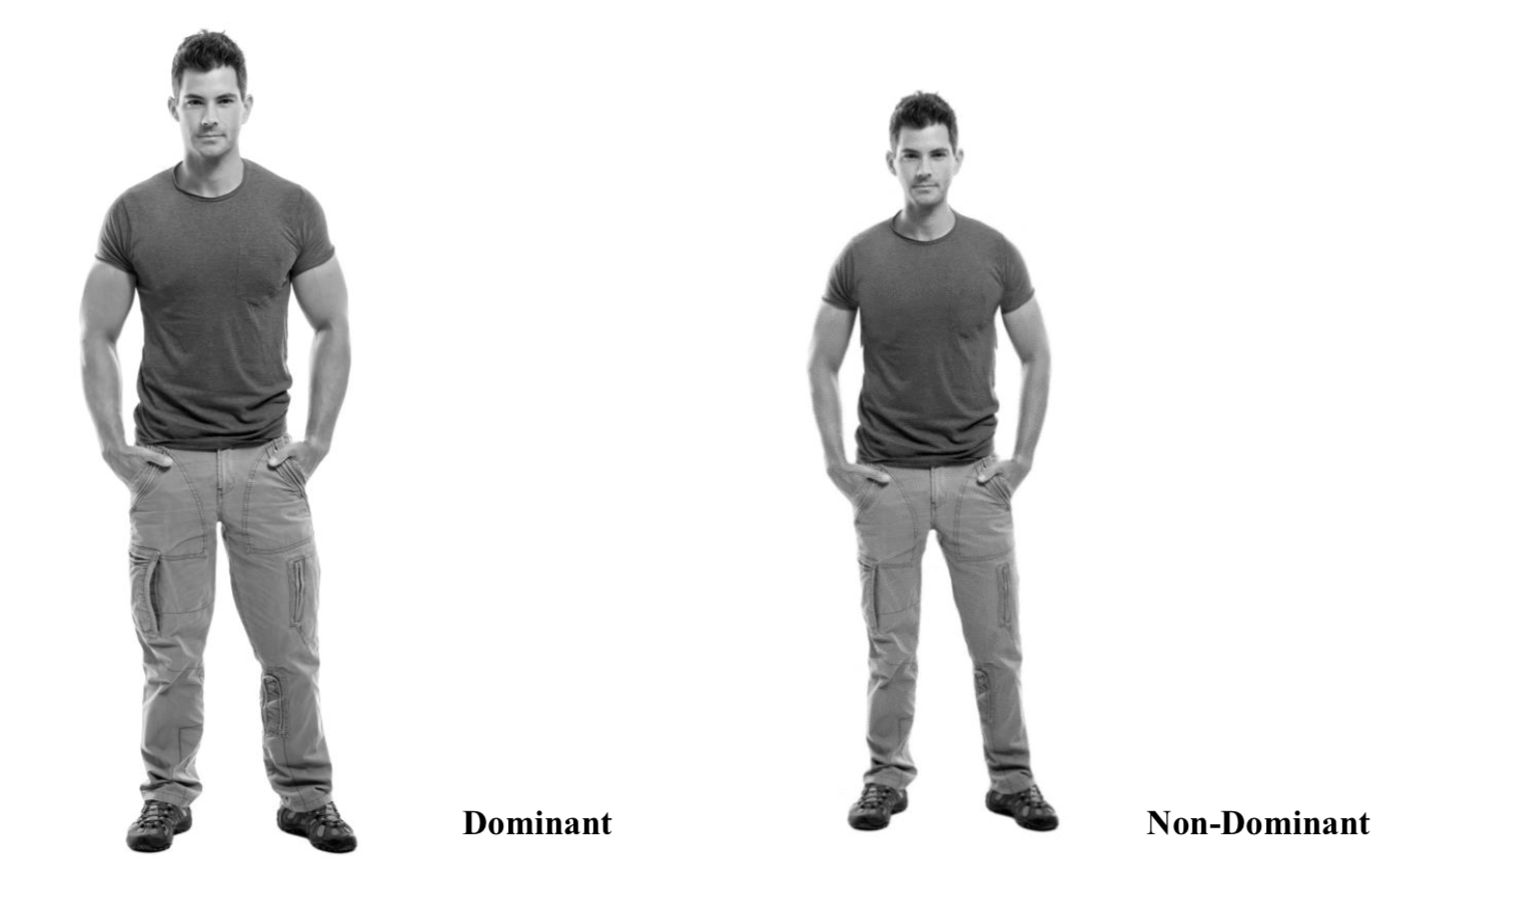 Men Beware: The Abercrombie & Fitch Effect - New Neuromarketing